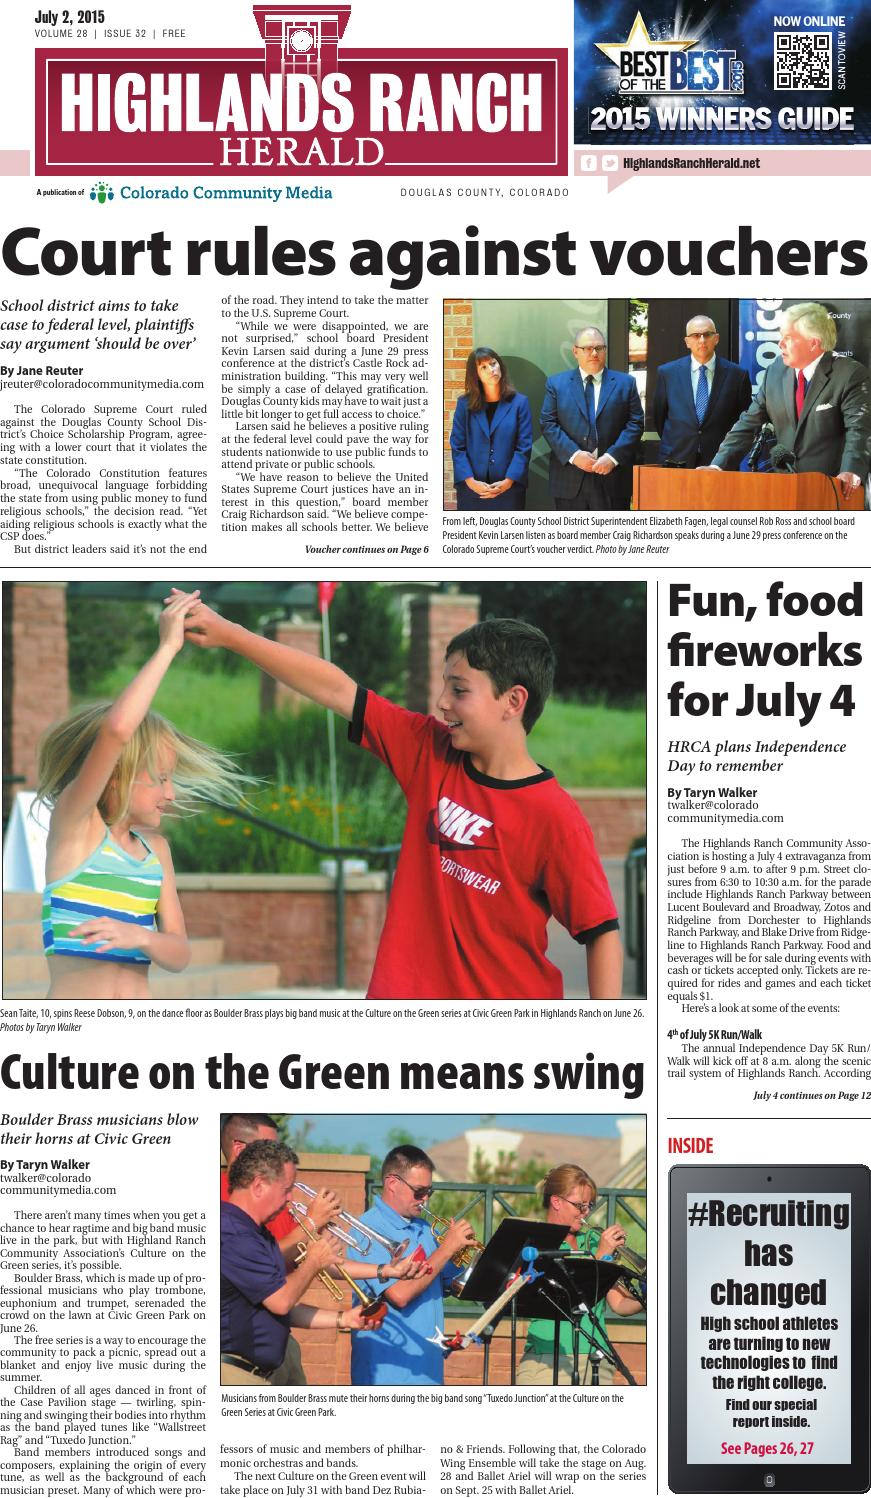 Highlands Ranch Herald 0702 by Colorado Community Media - issuu